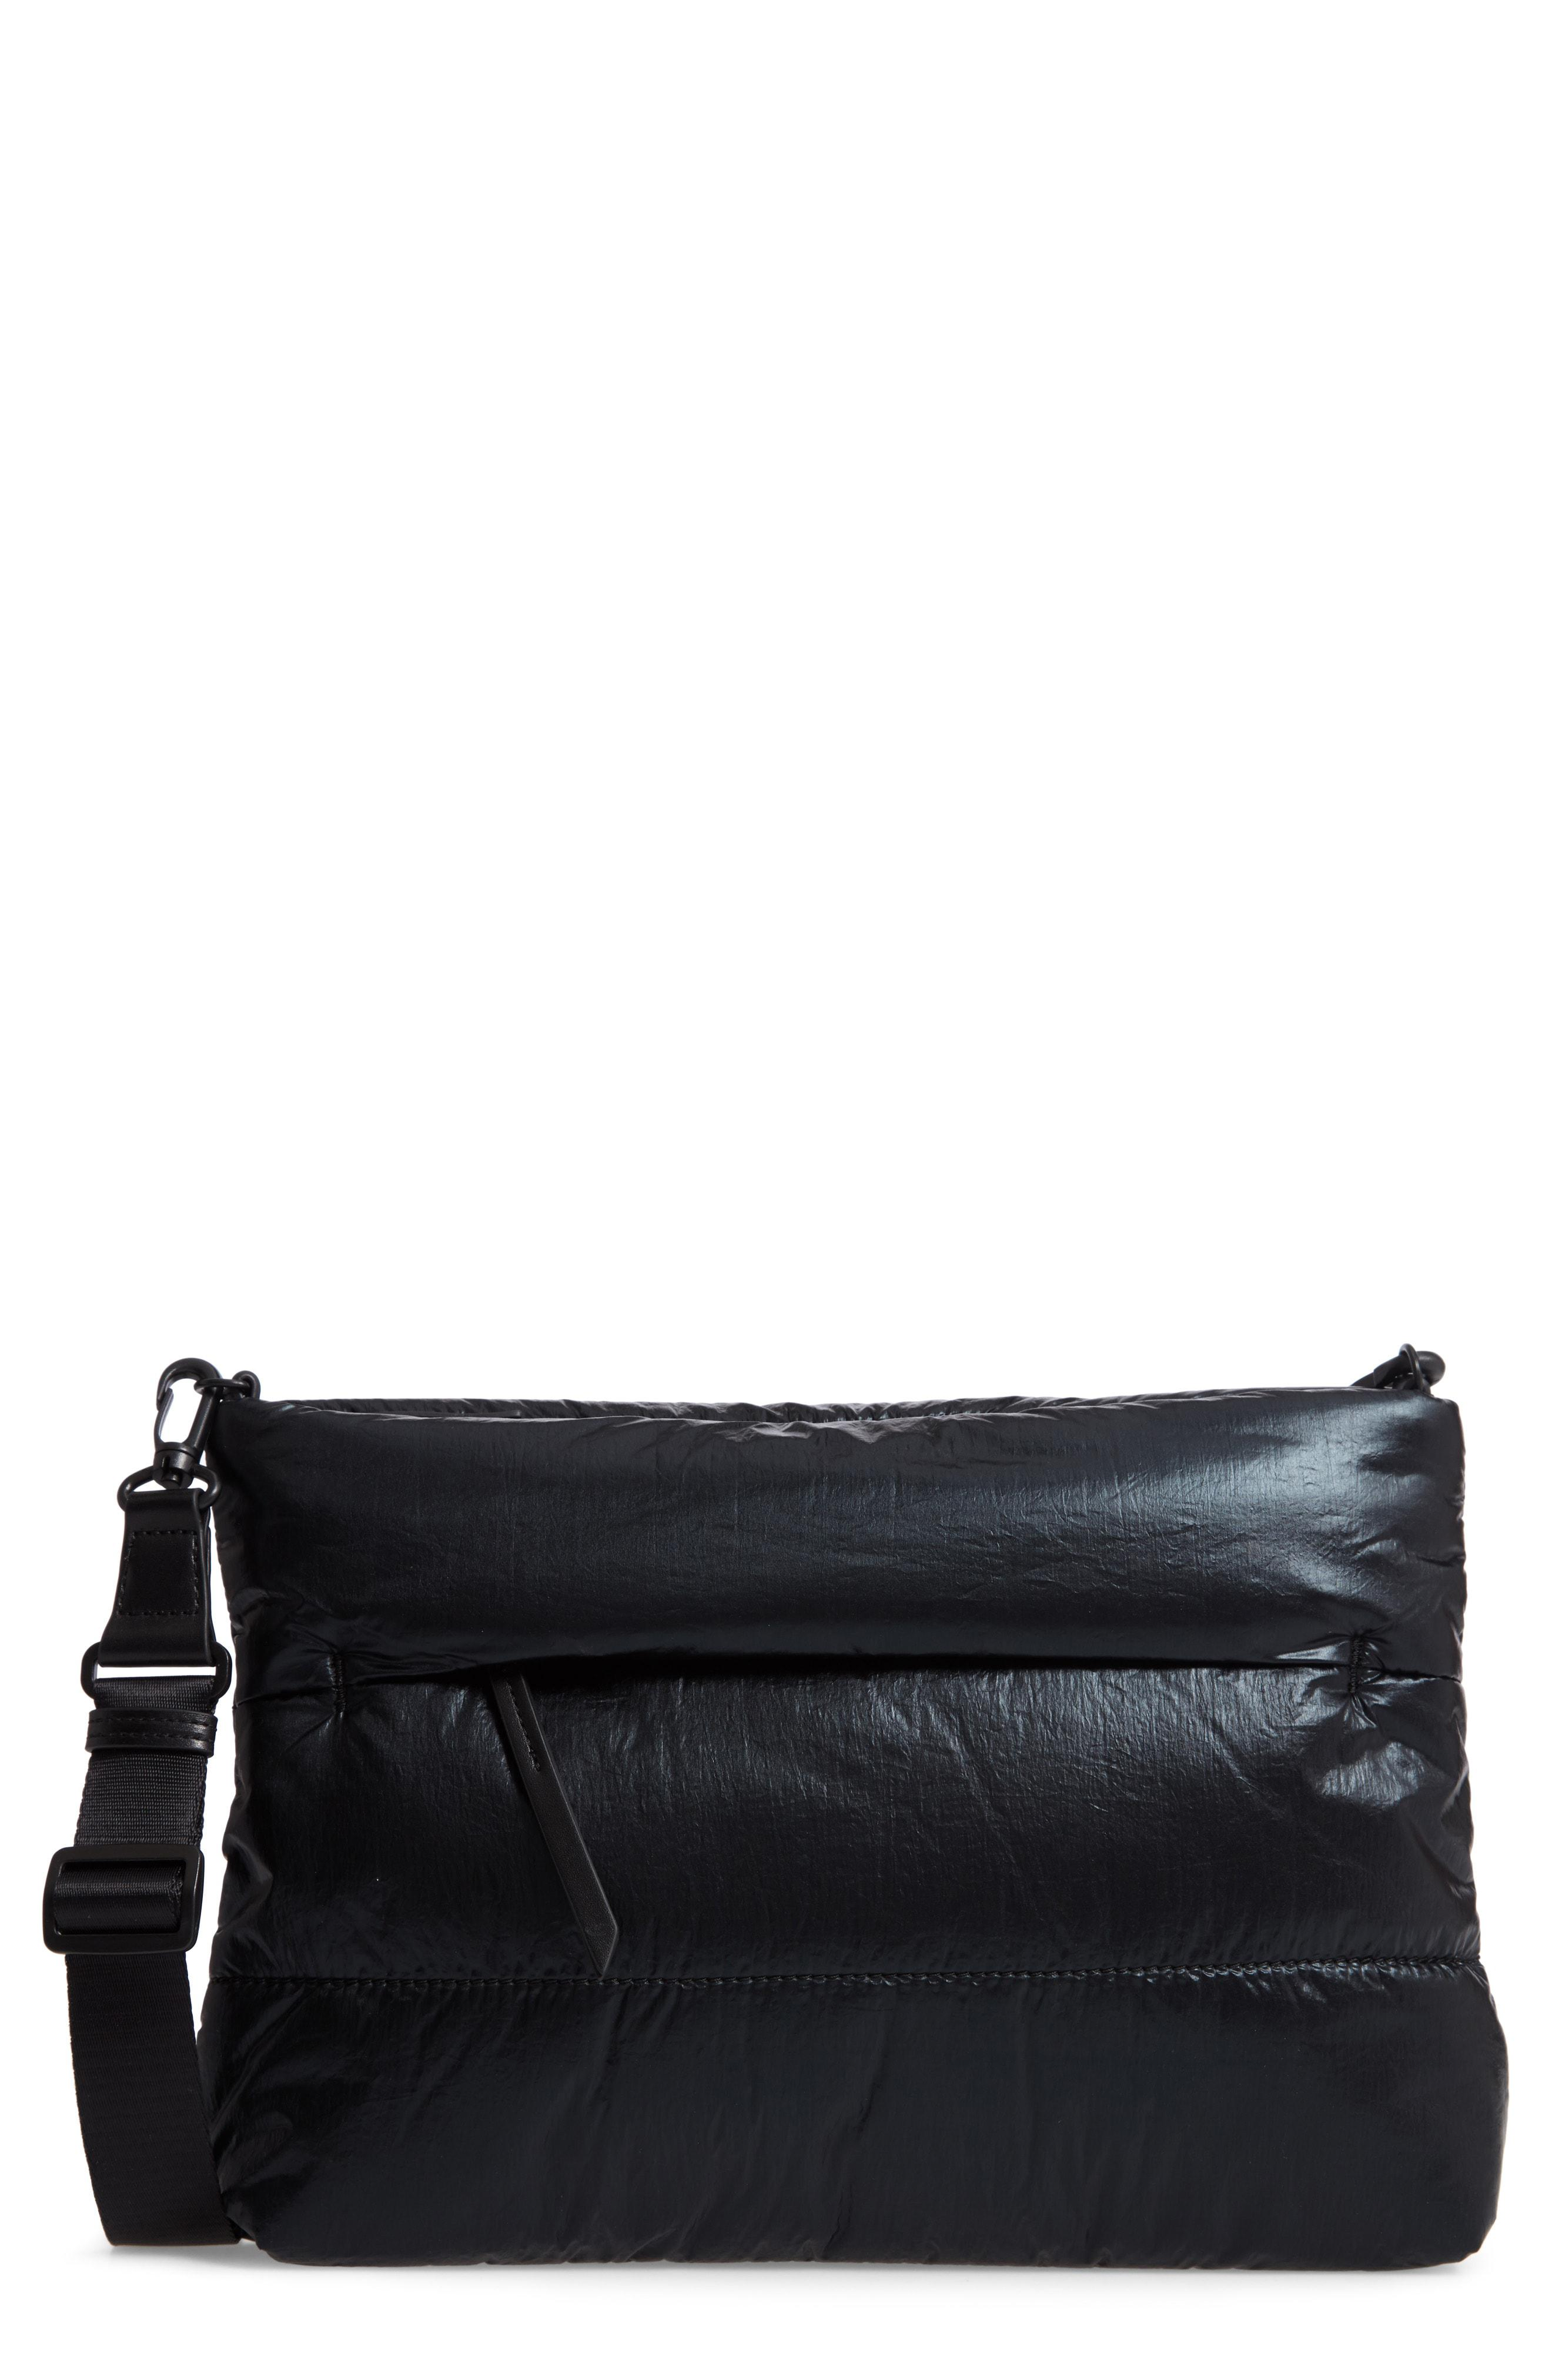 b622b48d46 Lyst - Trouvé Keri Nylon Crossbody in Black